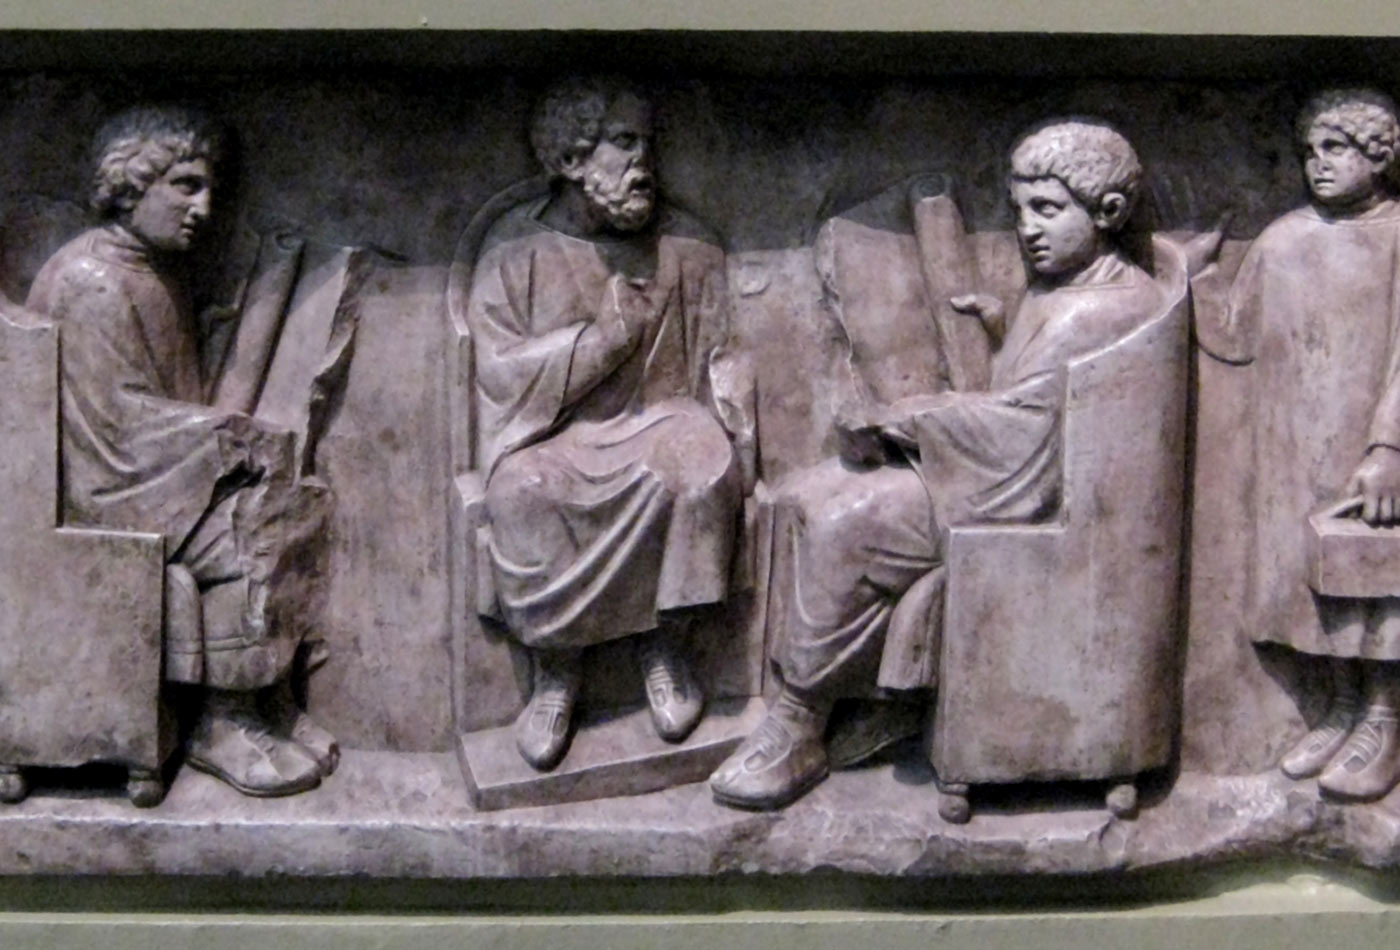 Relief found in Neumagen near Trier, a teacher with three discipuli. Around 180–185 CE. Photo of casting in Pushkin museum, Moscow.